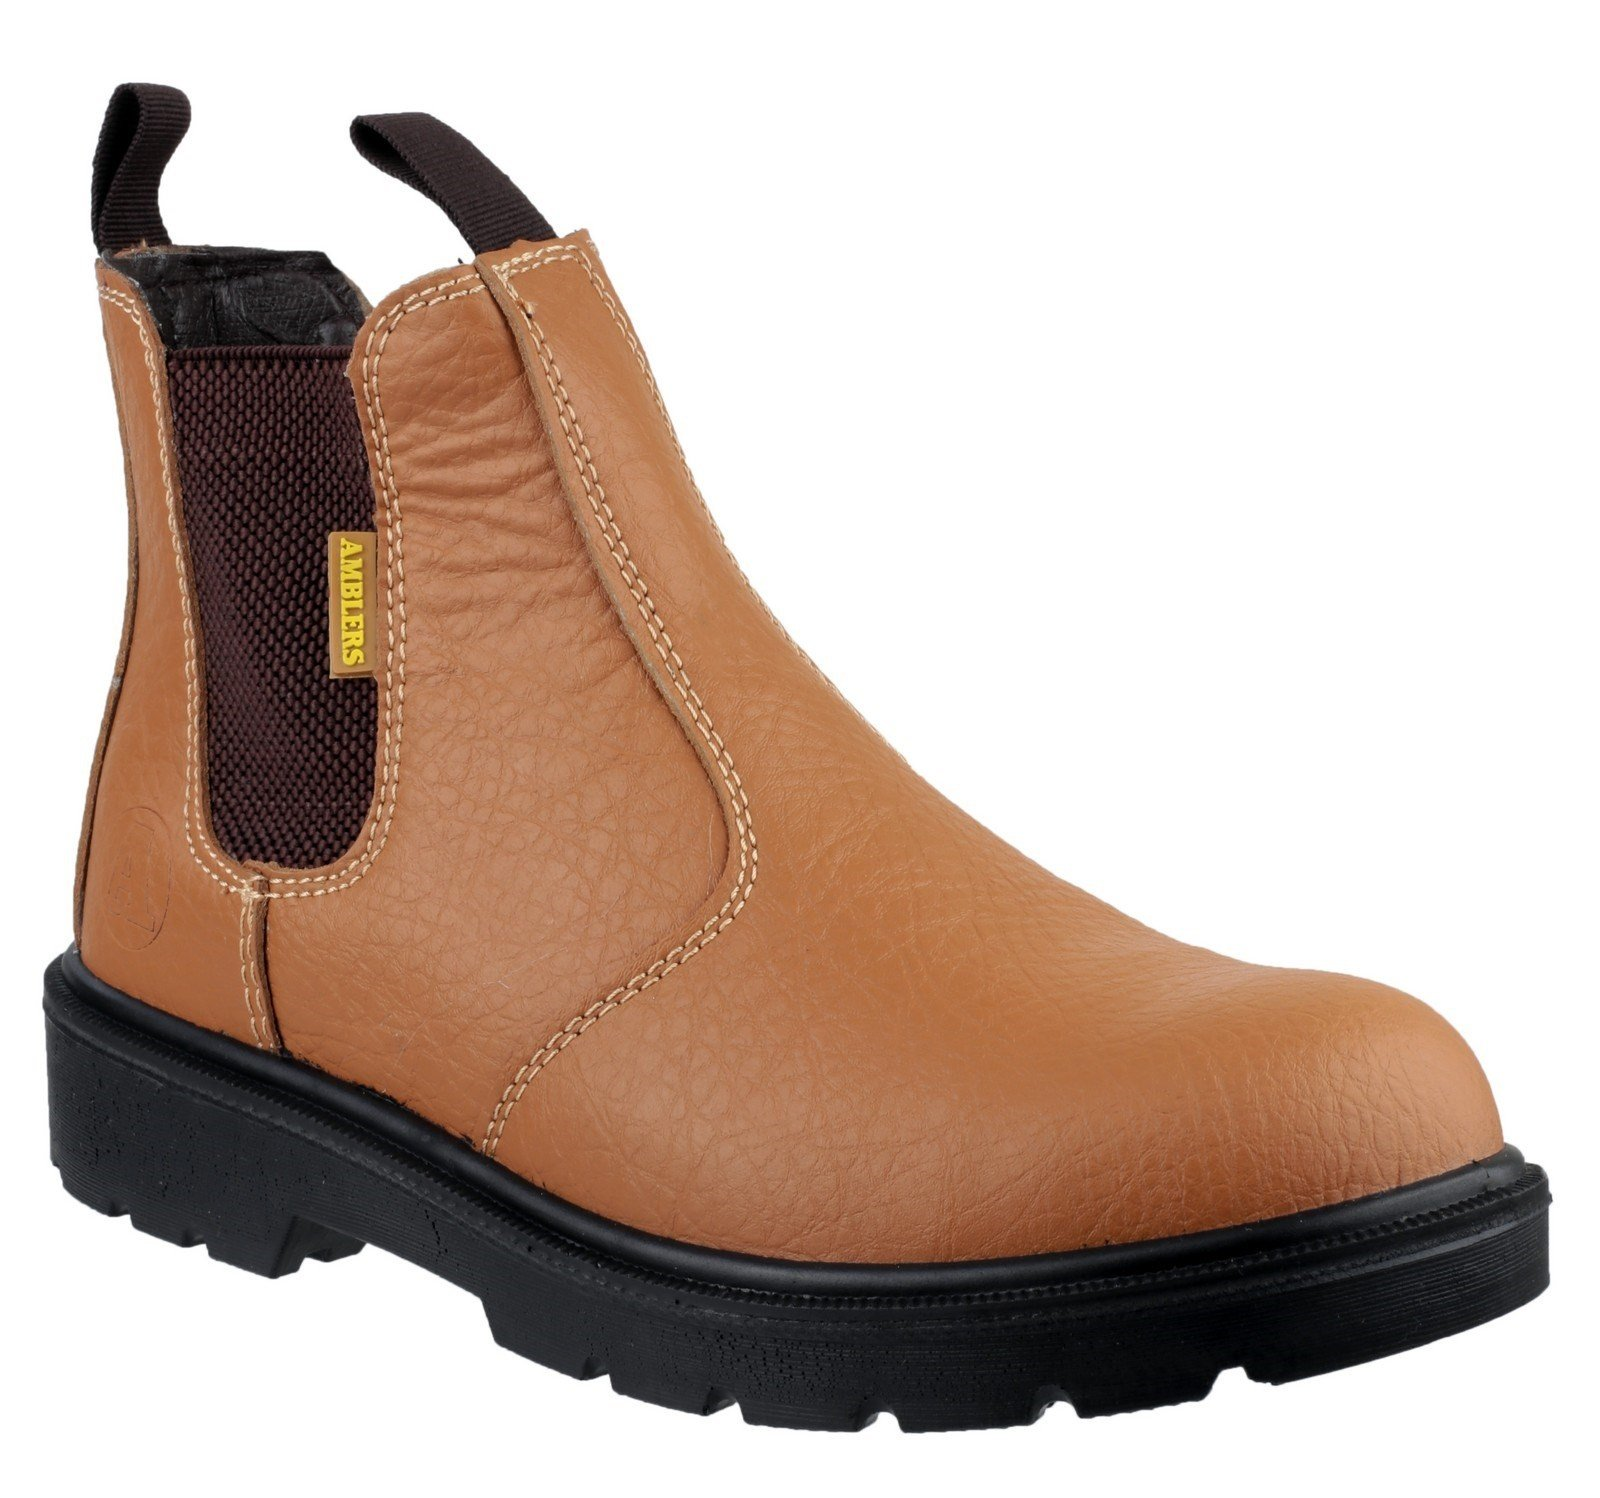 Amblers Unisex Safety Dual Density Pull on Chelsea Boot Tan 19920 - Tan 3